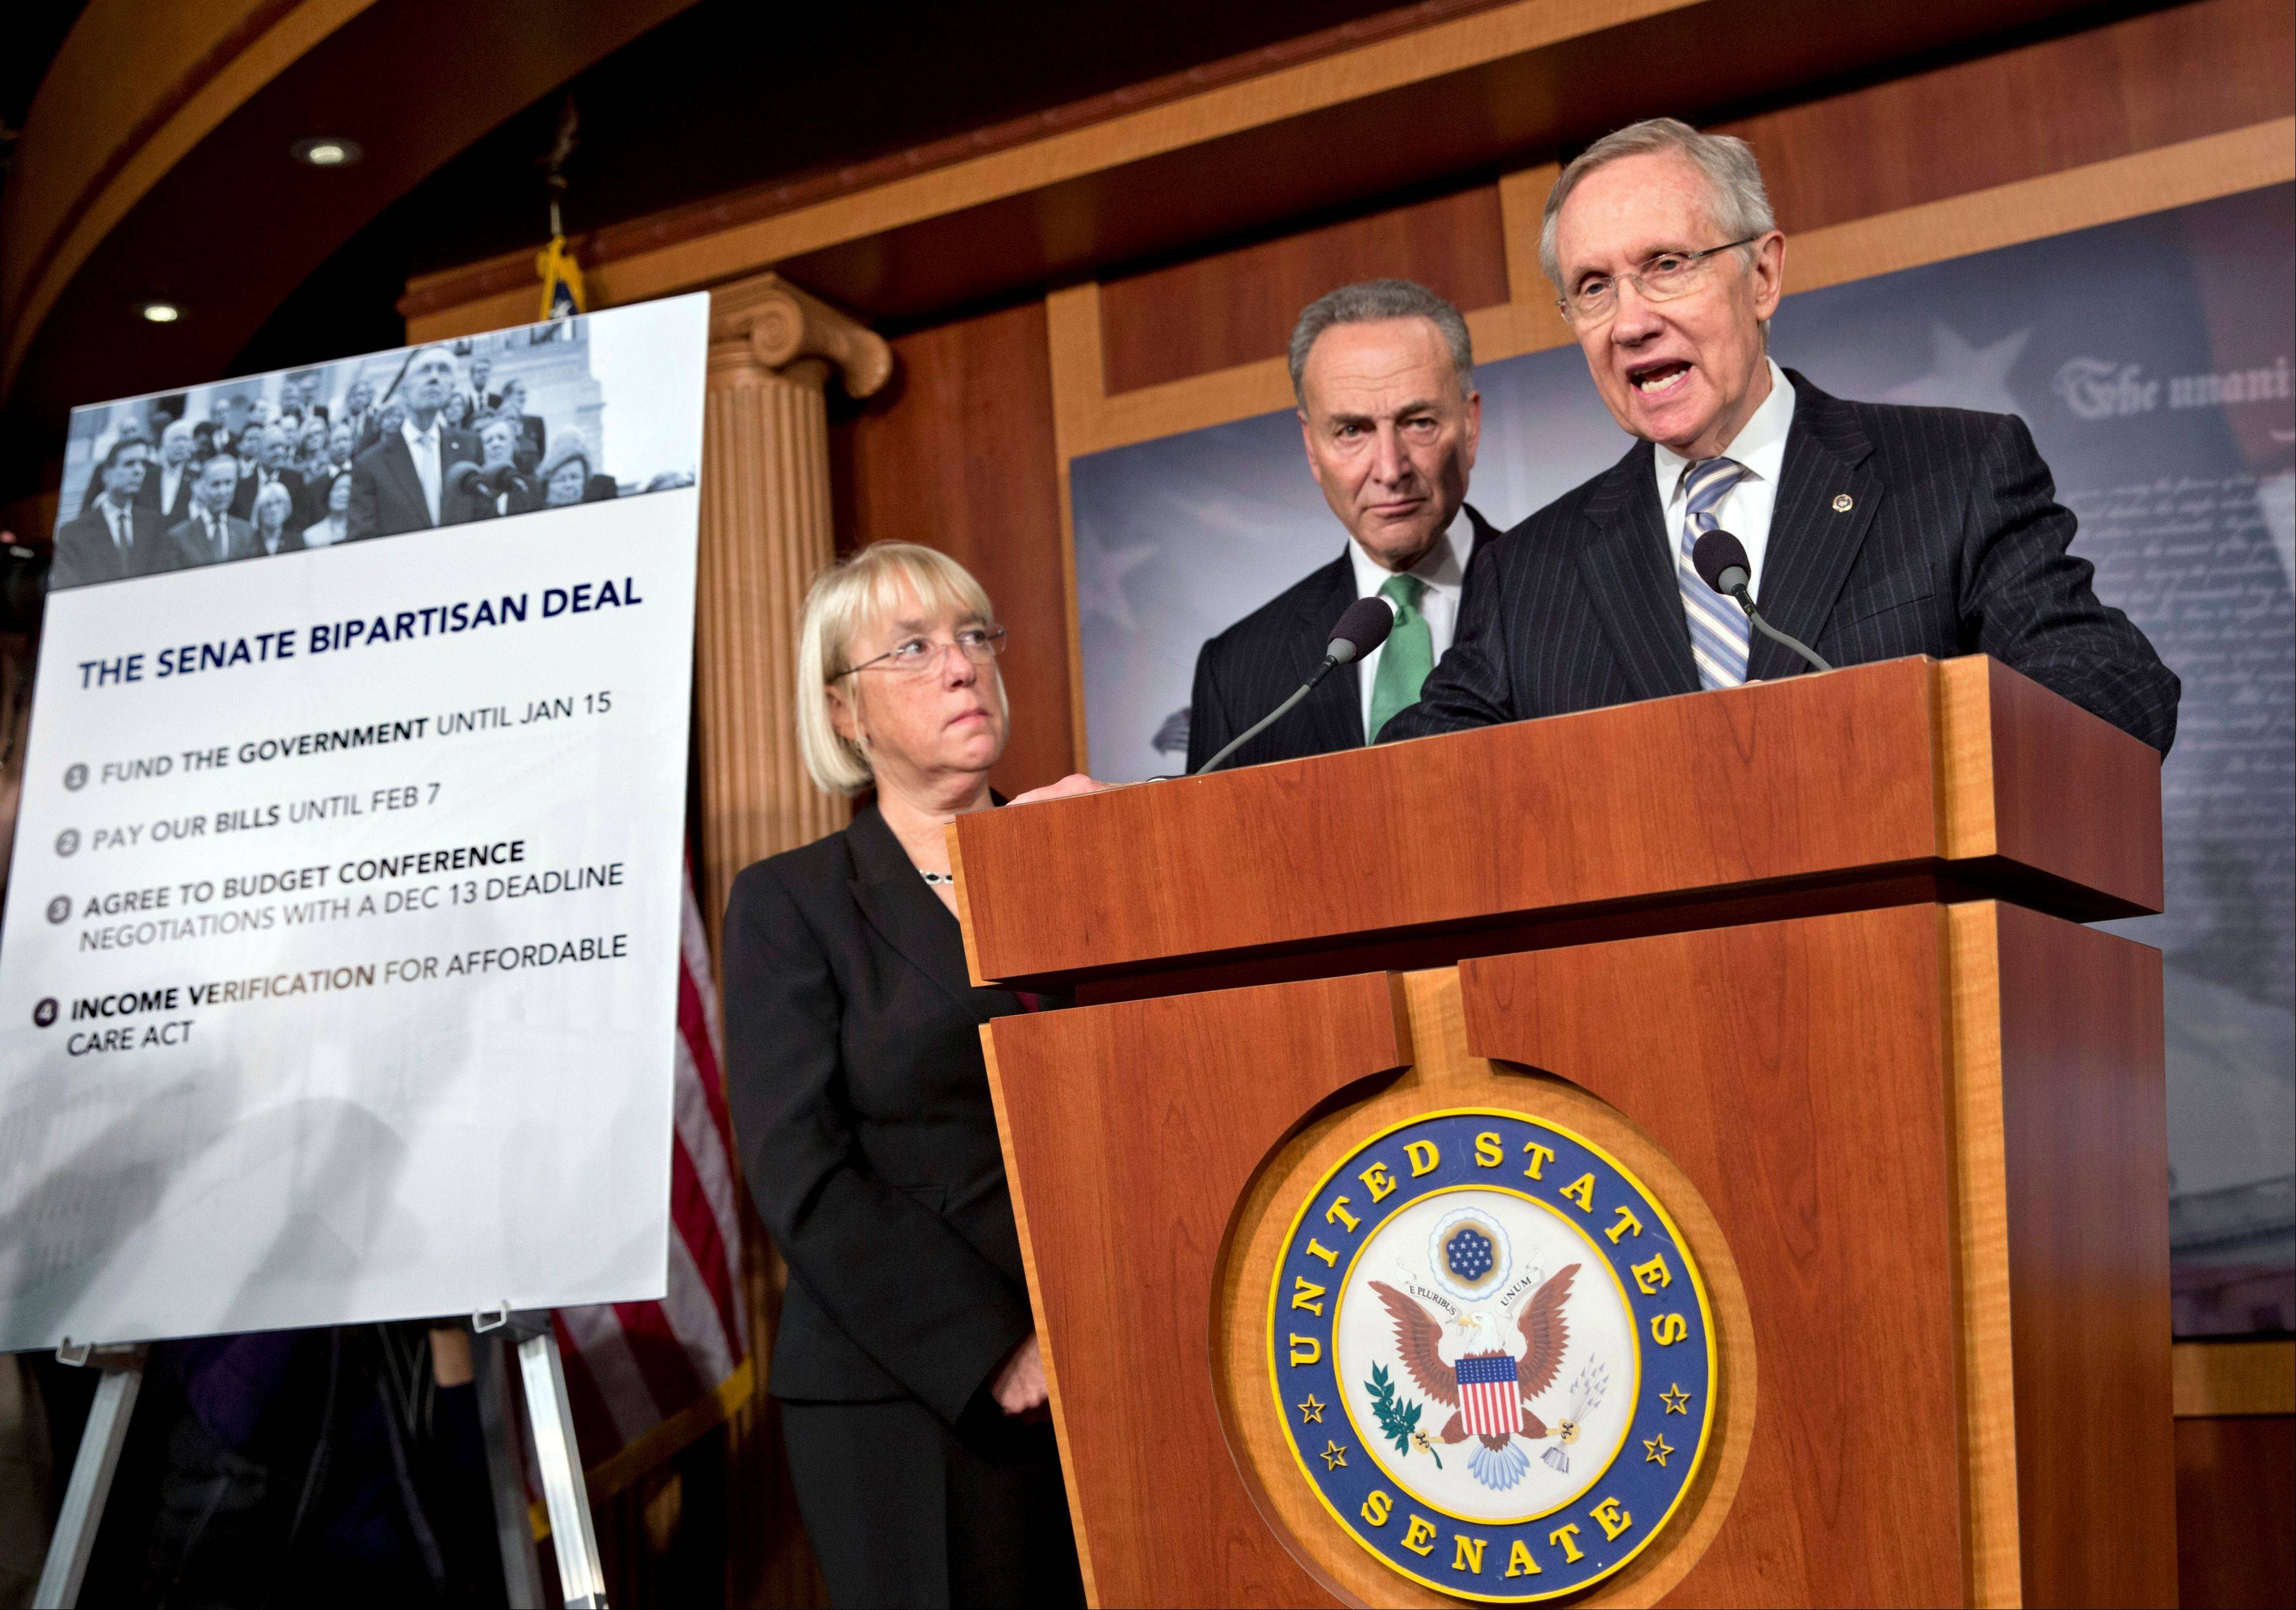 Senate Majority Leader Harry Reid, D-Nev., speaks with reporters after voting on a measure to avert a threatened Treasury default and reopen the government after a partial, 16-day shutdown, at the Capitol in Washington, Wednesday, Oct. 16, 2013, as Sen. Patty Murray, D-Wash., chair of the Senate Budget Committee, Sen. Chuck Schumer, D-N.Y., listen.